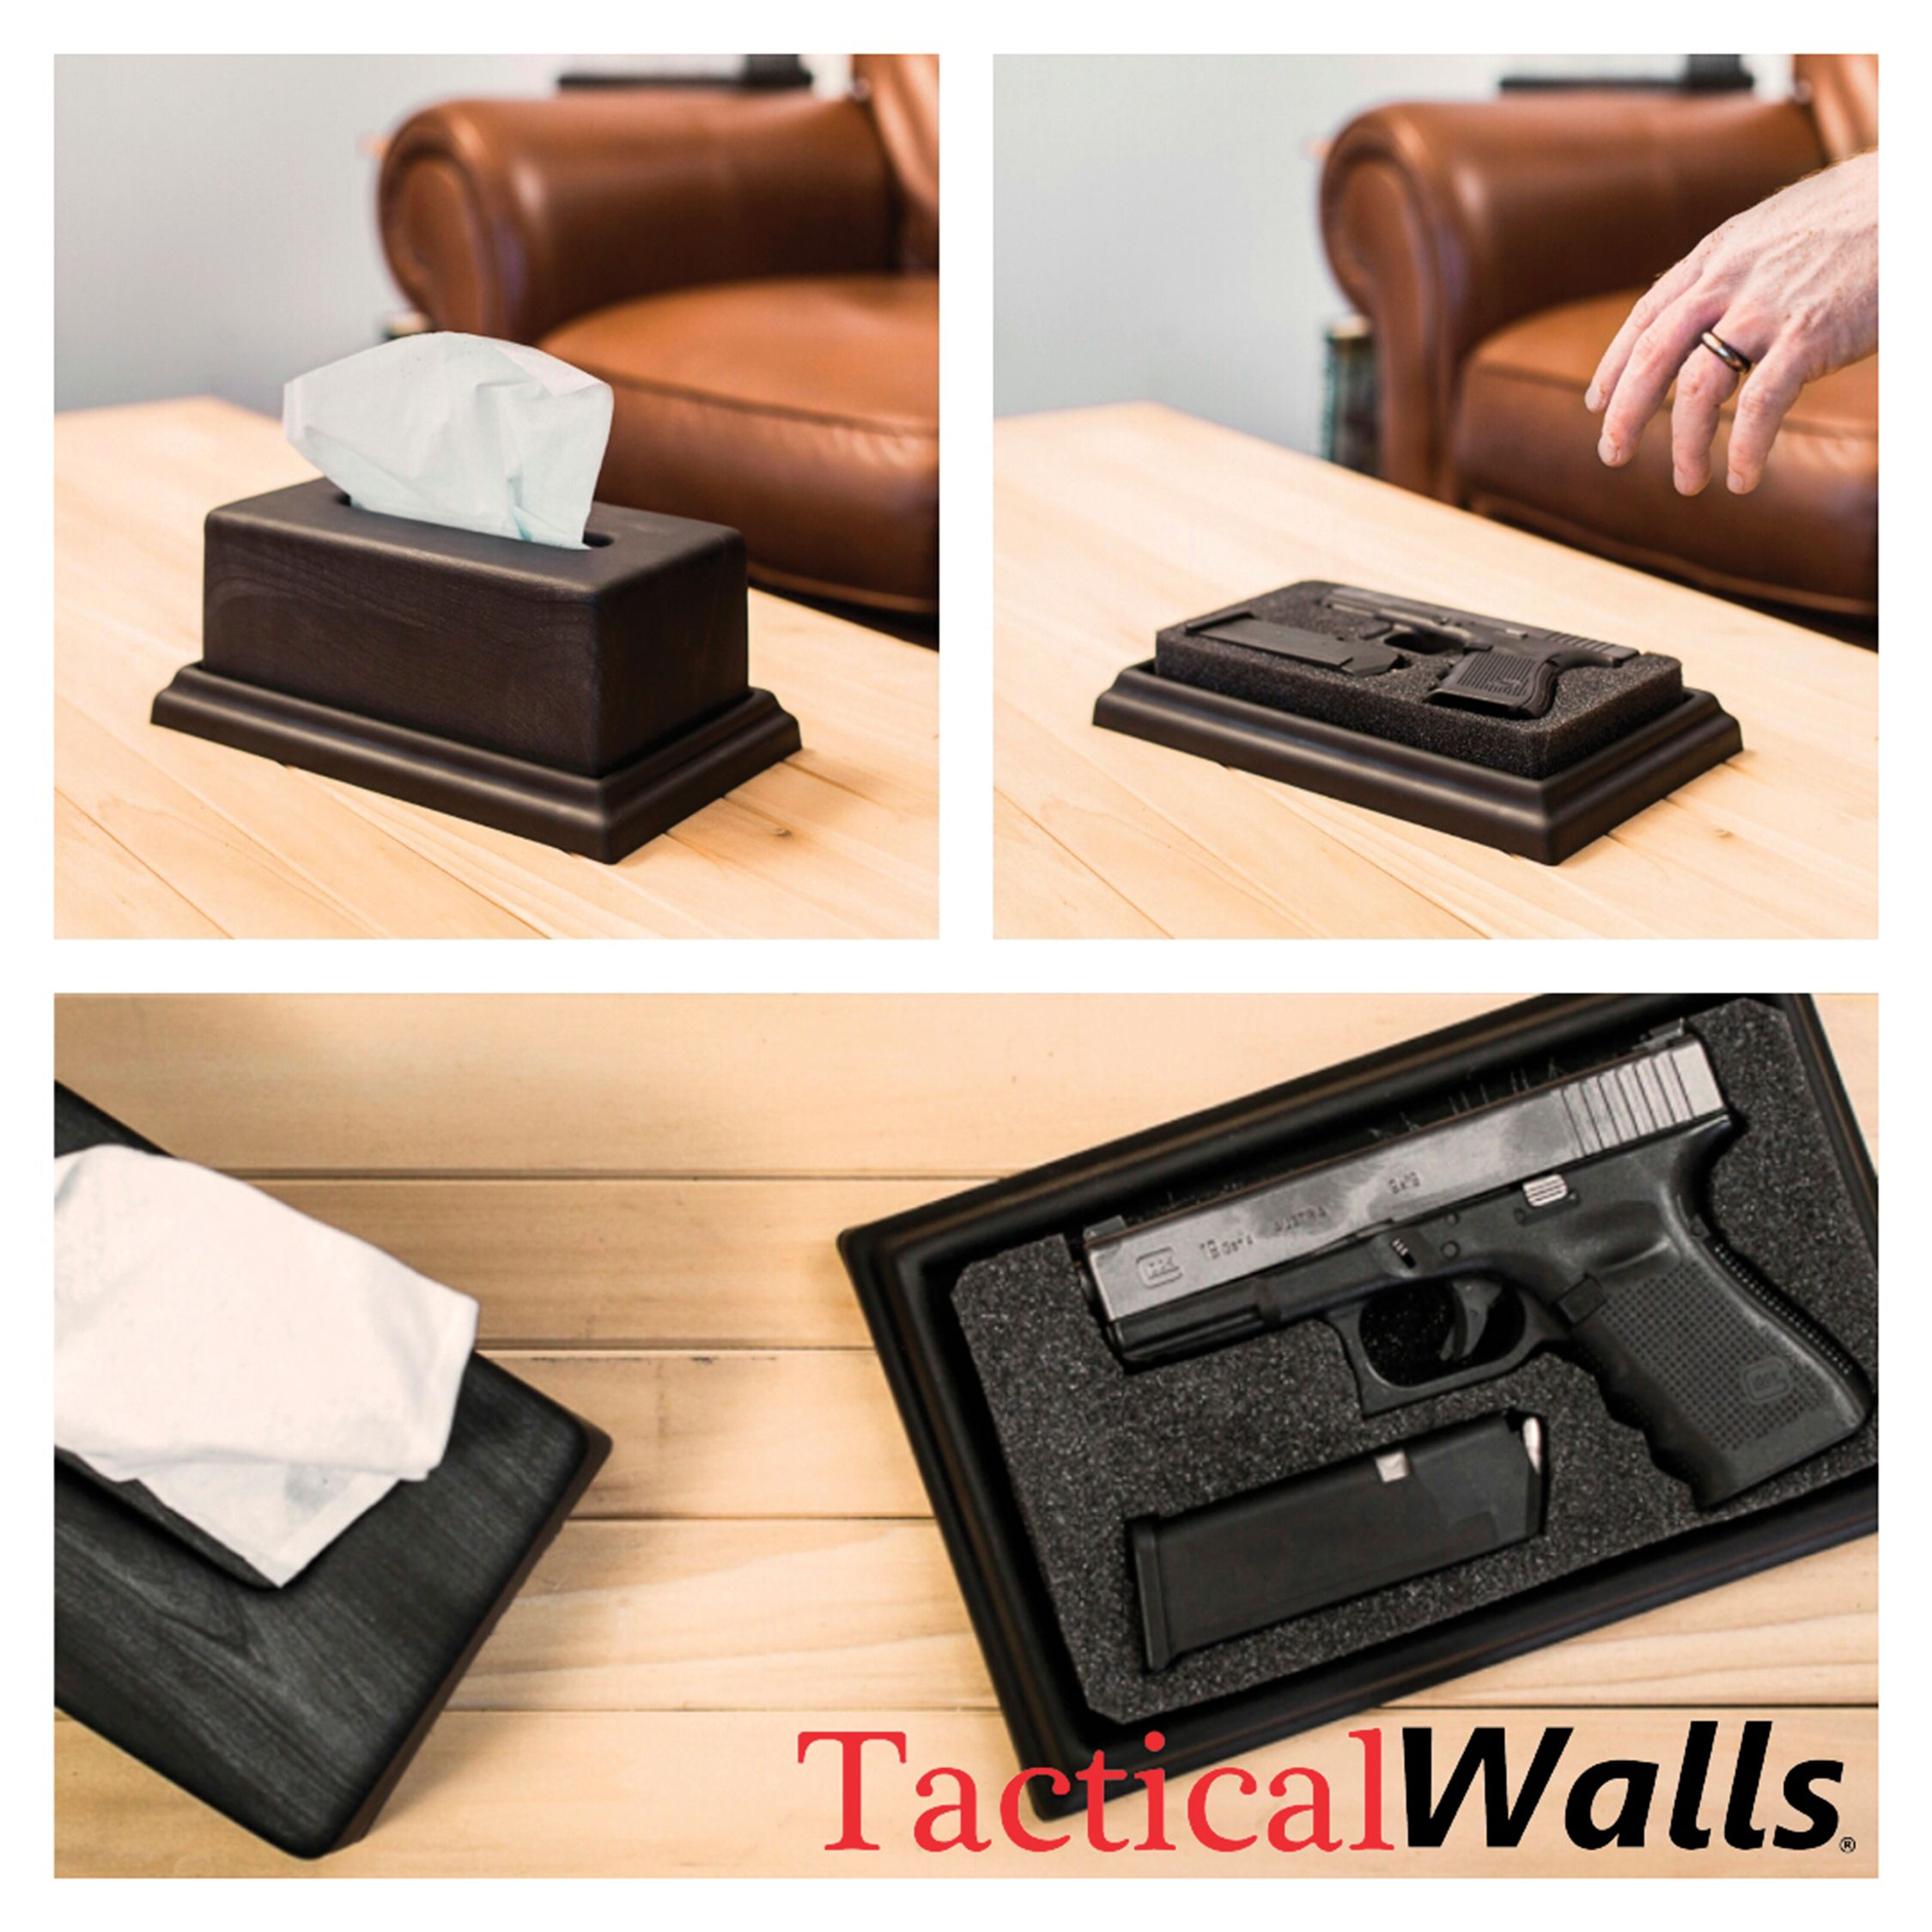 Tissue Box Hidden Gun Would be perfect for the camper or boat